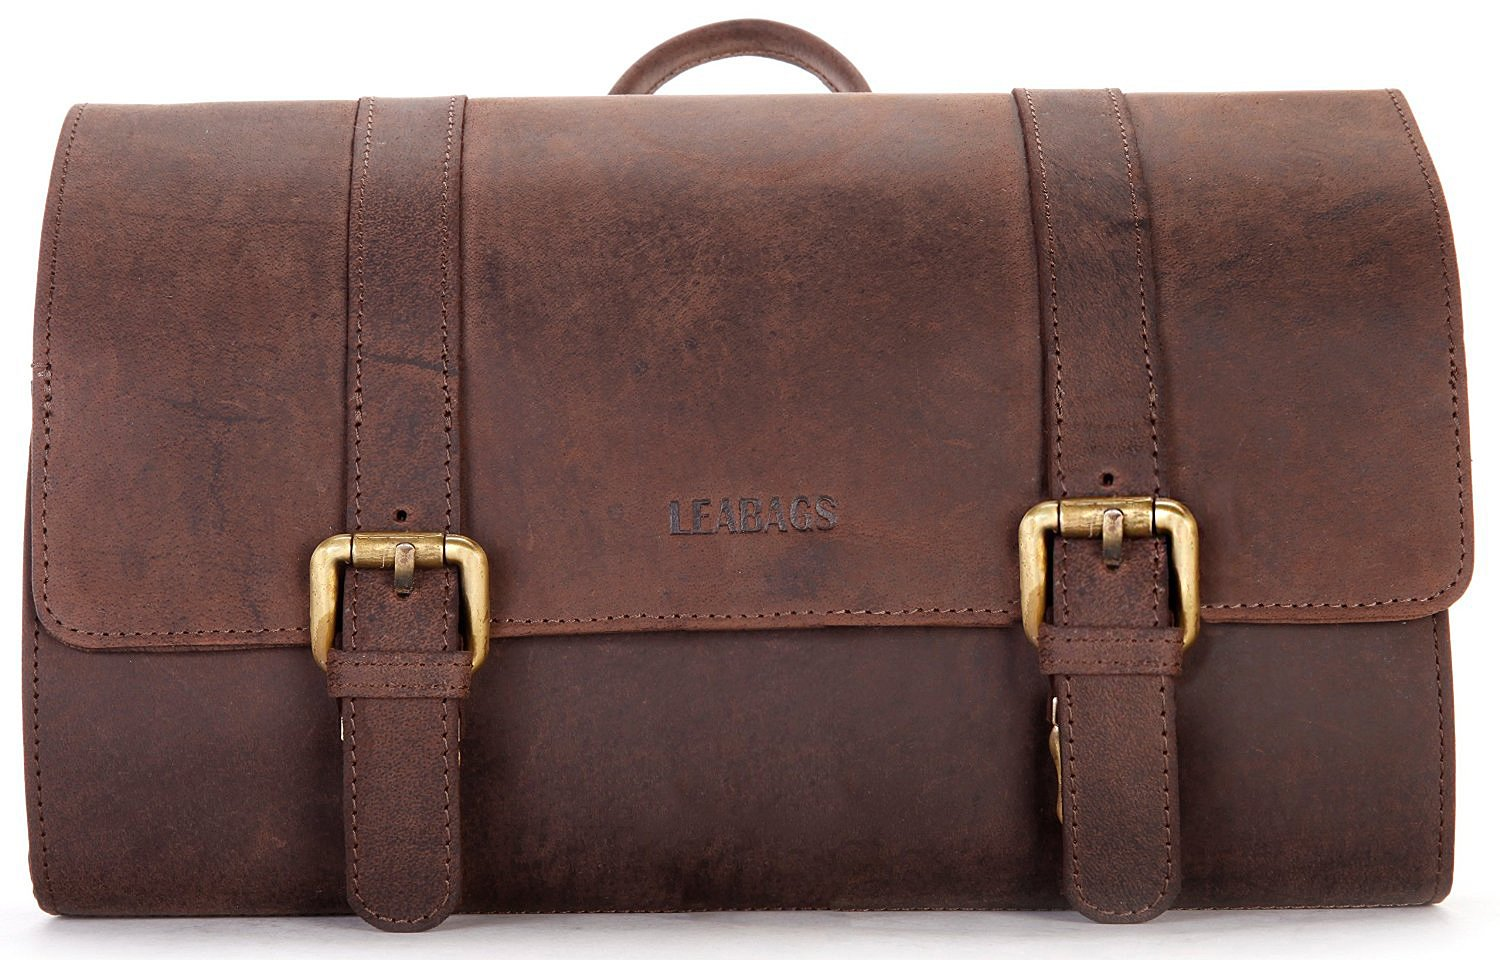 b7235e371a9 Amazon.com   LEABAGS Palm Mountain genuine buffalo leather toiletry bag in  vintage style - Nutmeg   Beauty